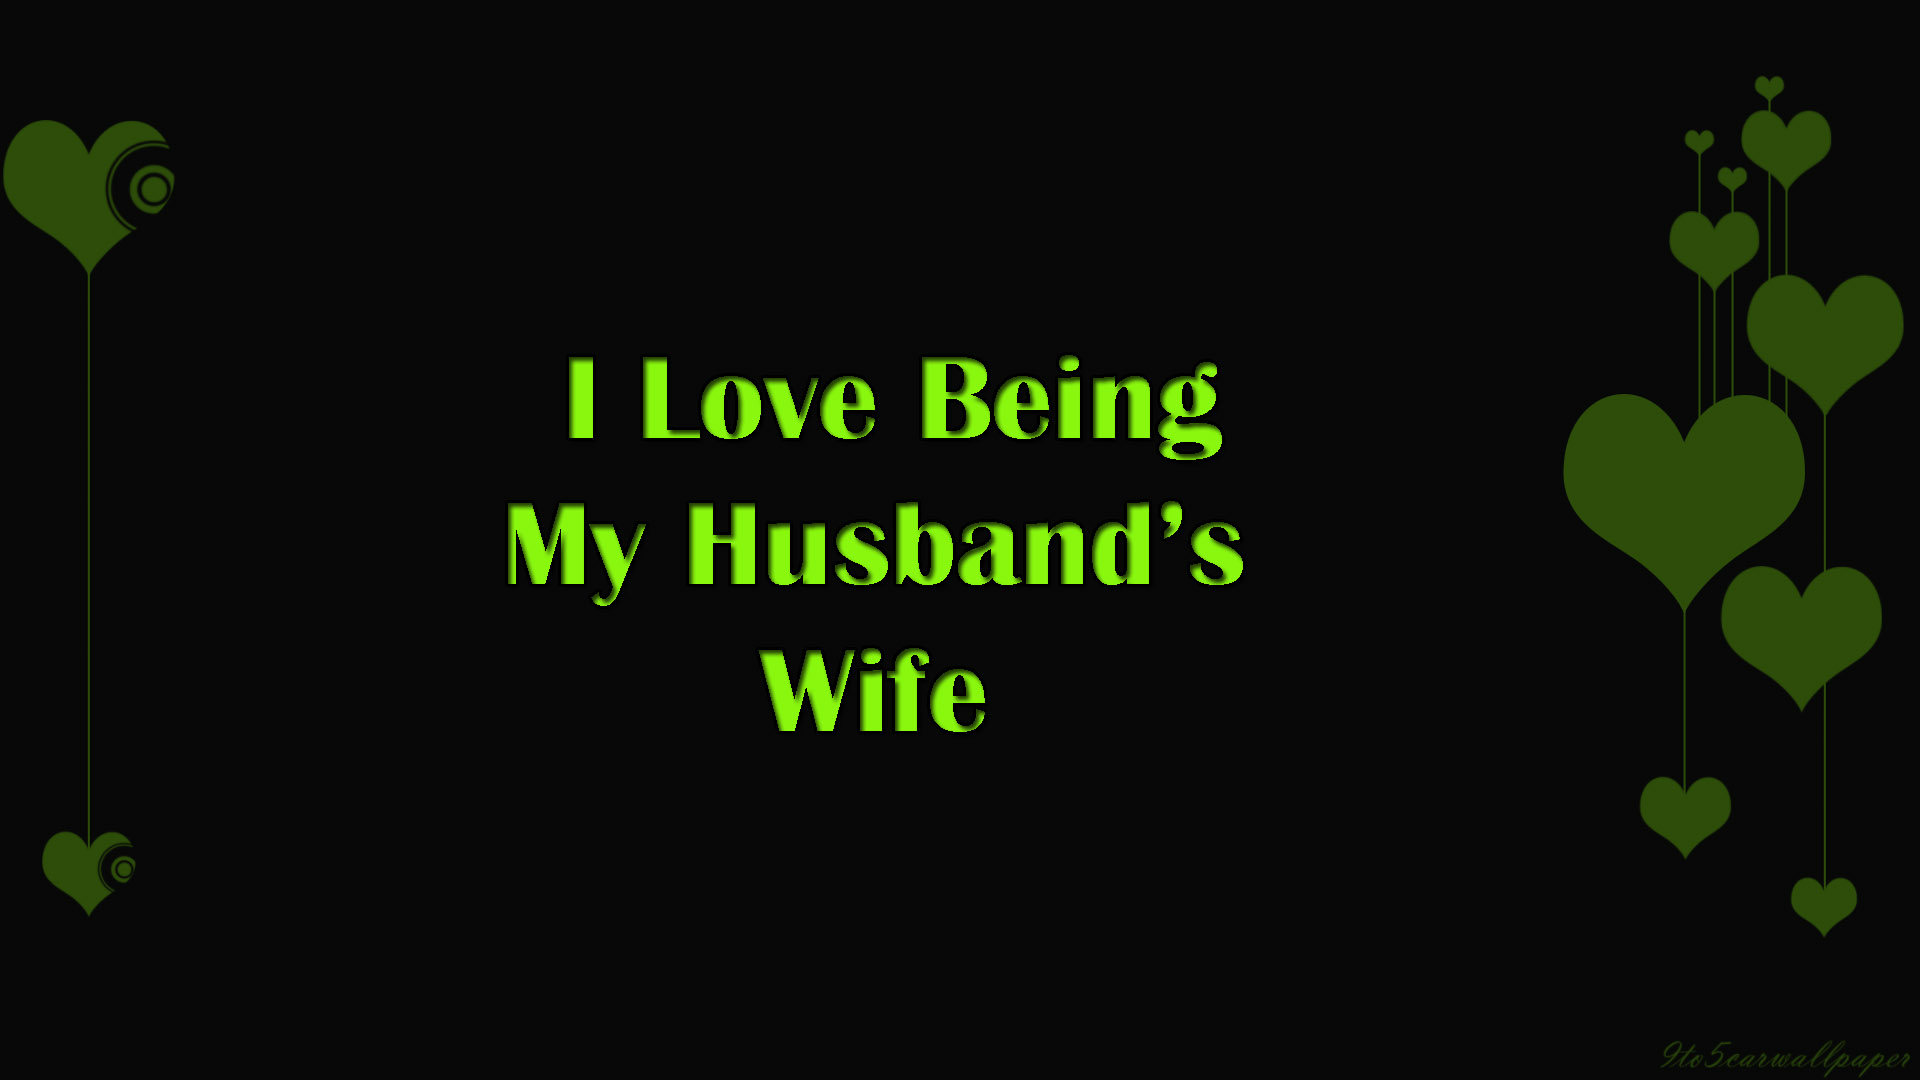 Husband Wife Love Wallpaper Images : Love Quotes,Images & Hd Wallpapers car Wallpapers